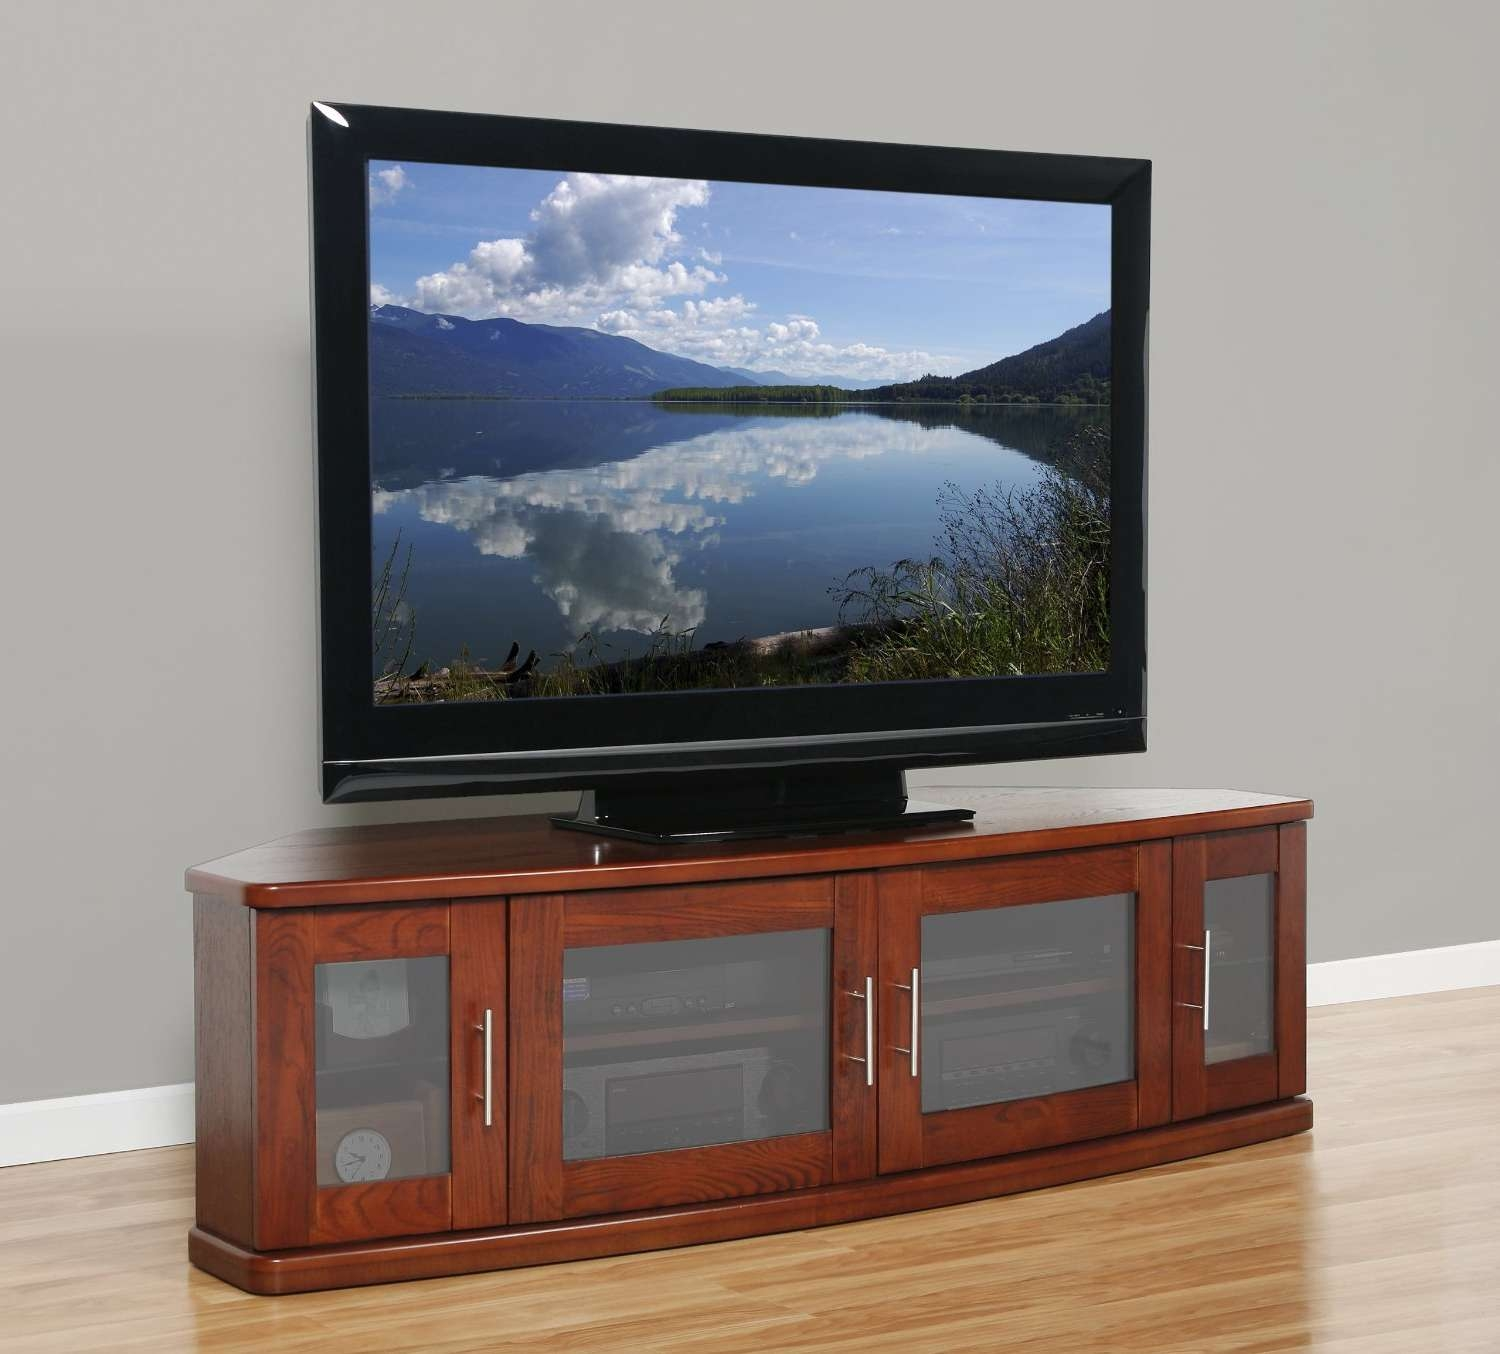 Home Designht Wood Tv Stands Buy Stand Today Save Sauder Harvest With Regard To Light Cherry Tv Stands (View 4 of 15)